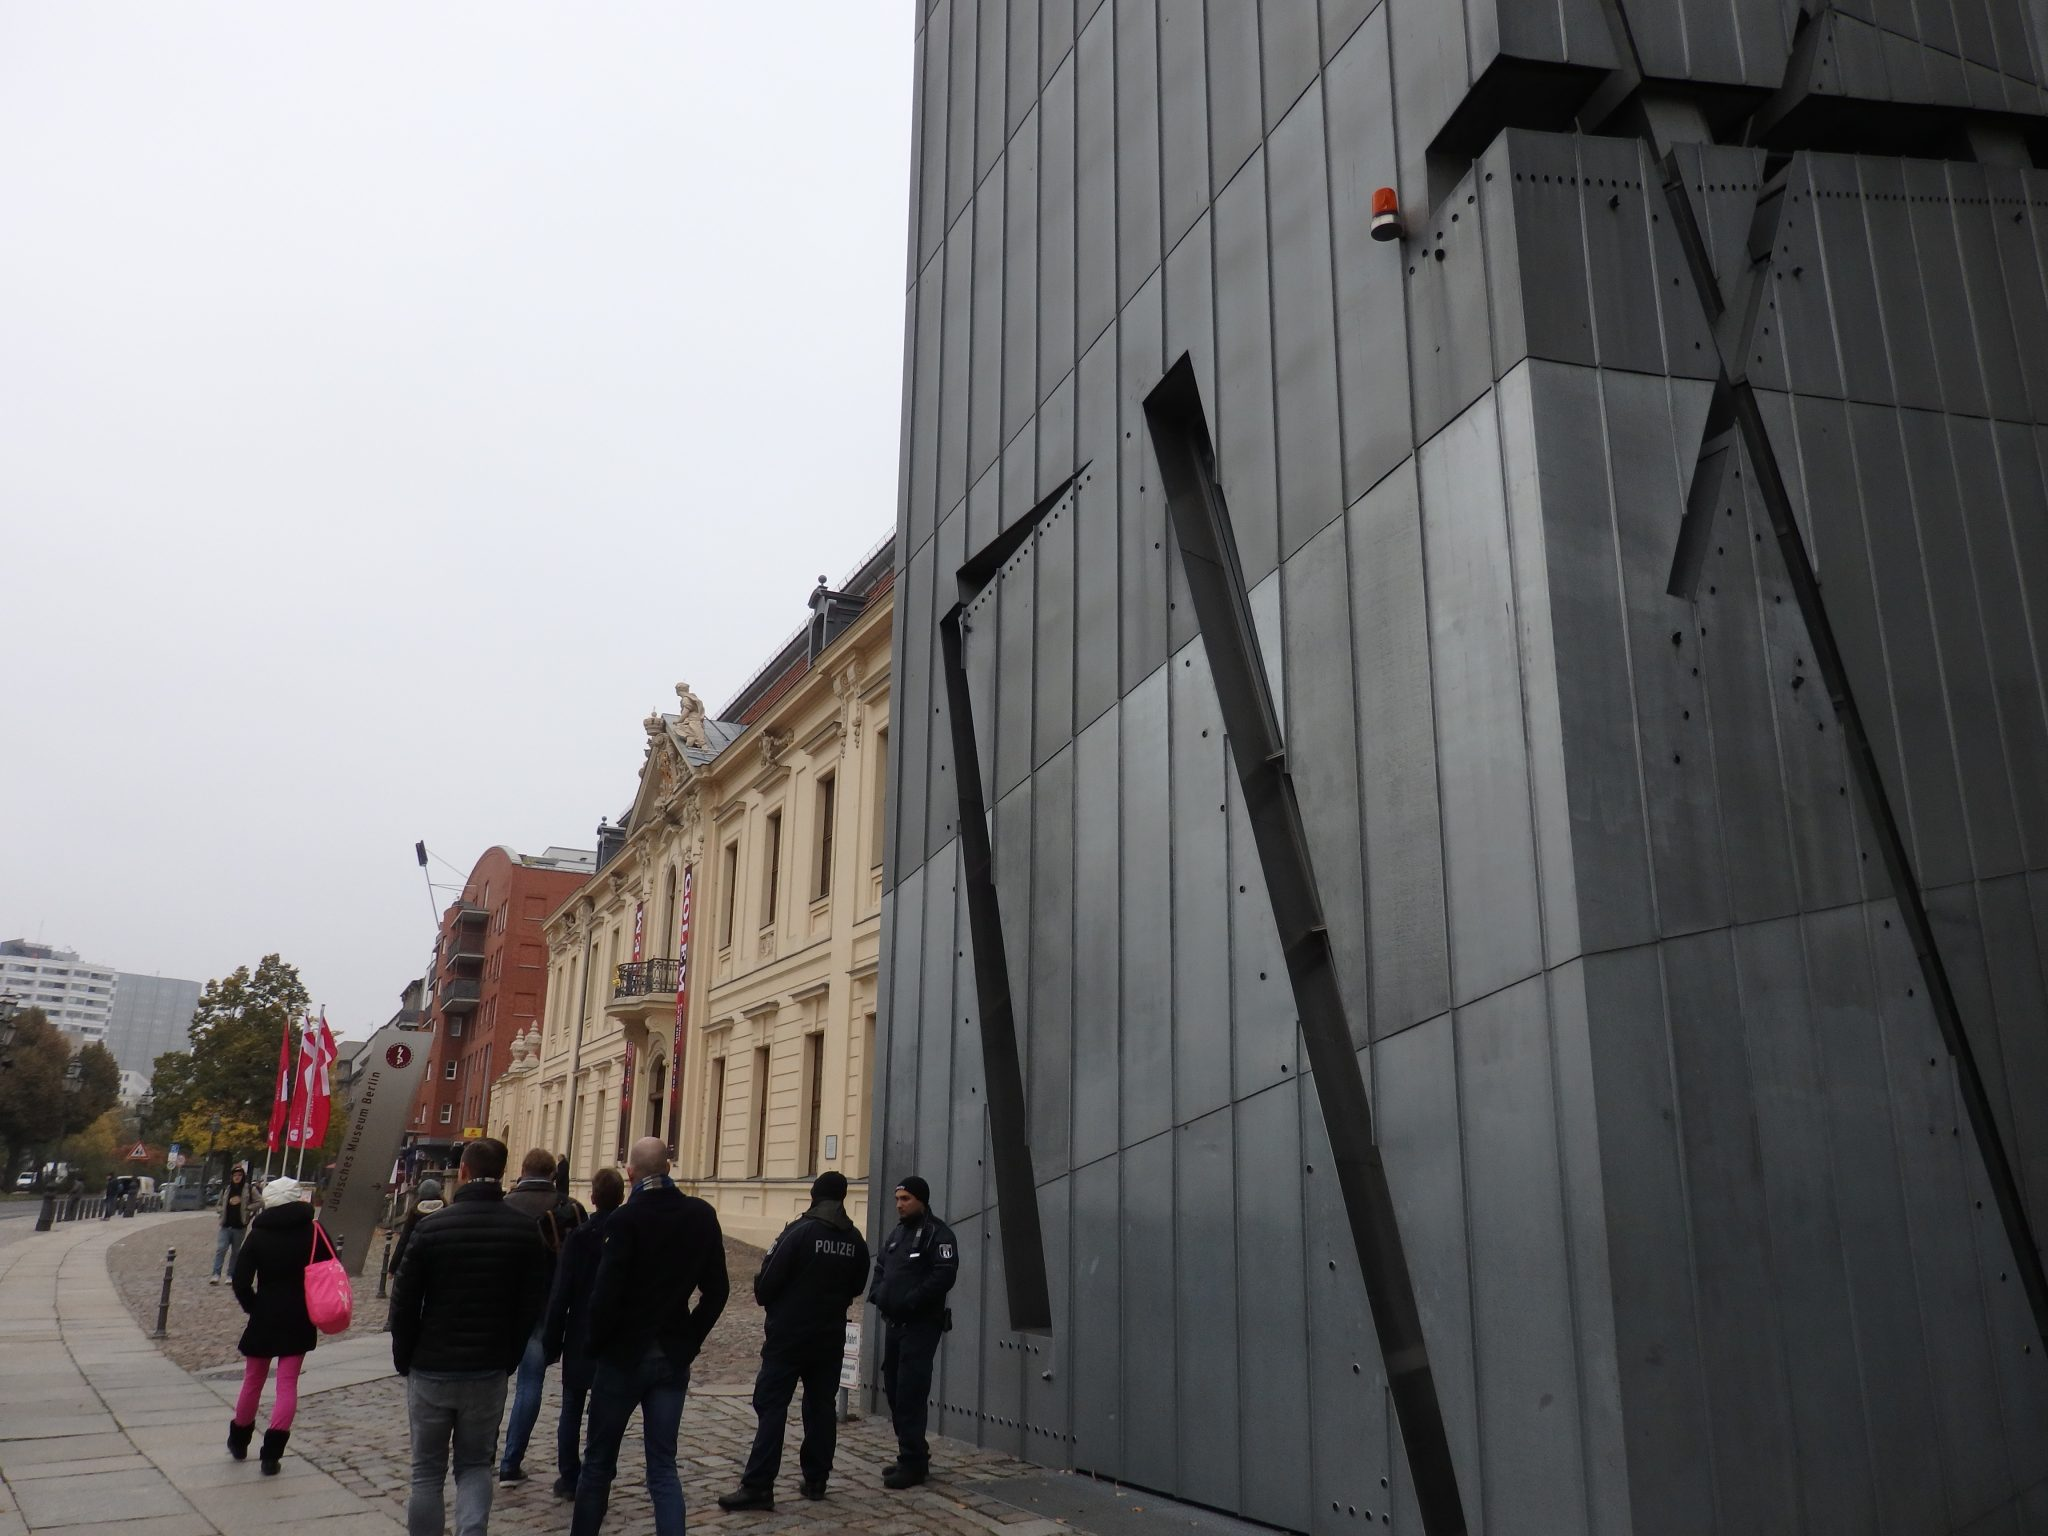 Here you can see a small segment of the new building and, beyond that, the old building, where the main entrance is. Jewish Museum Berlin